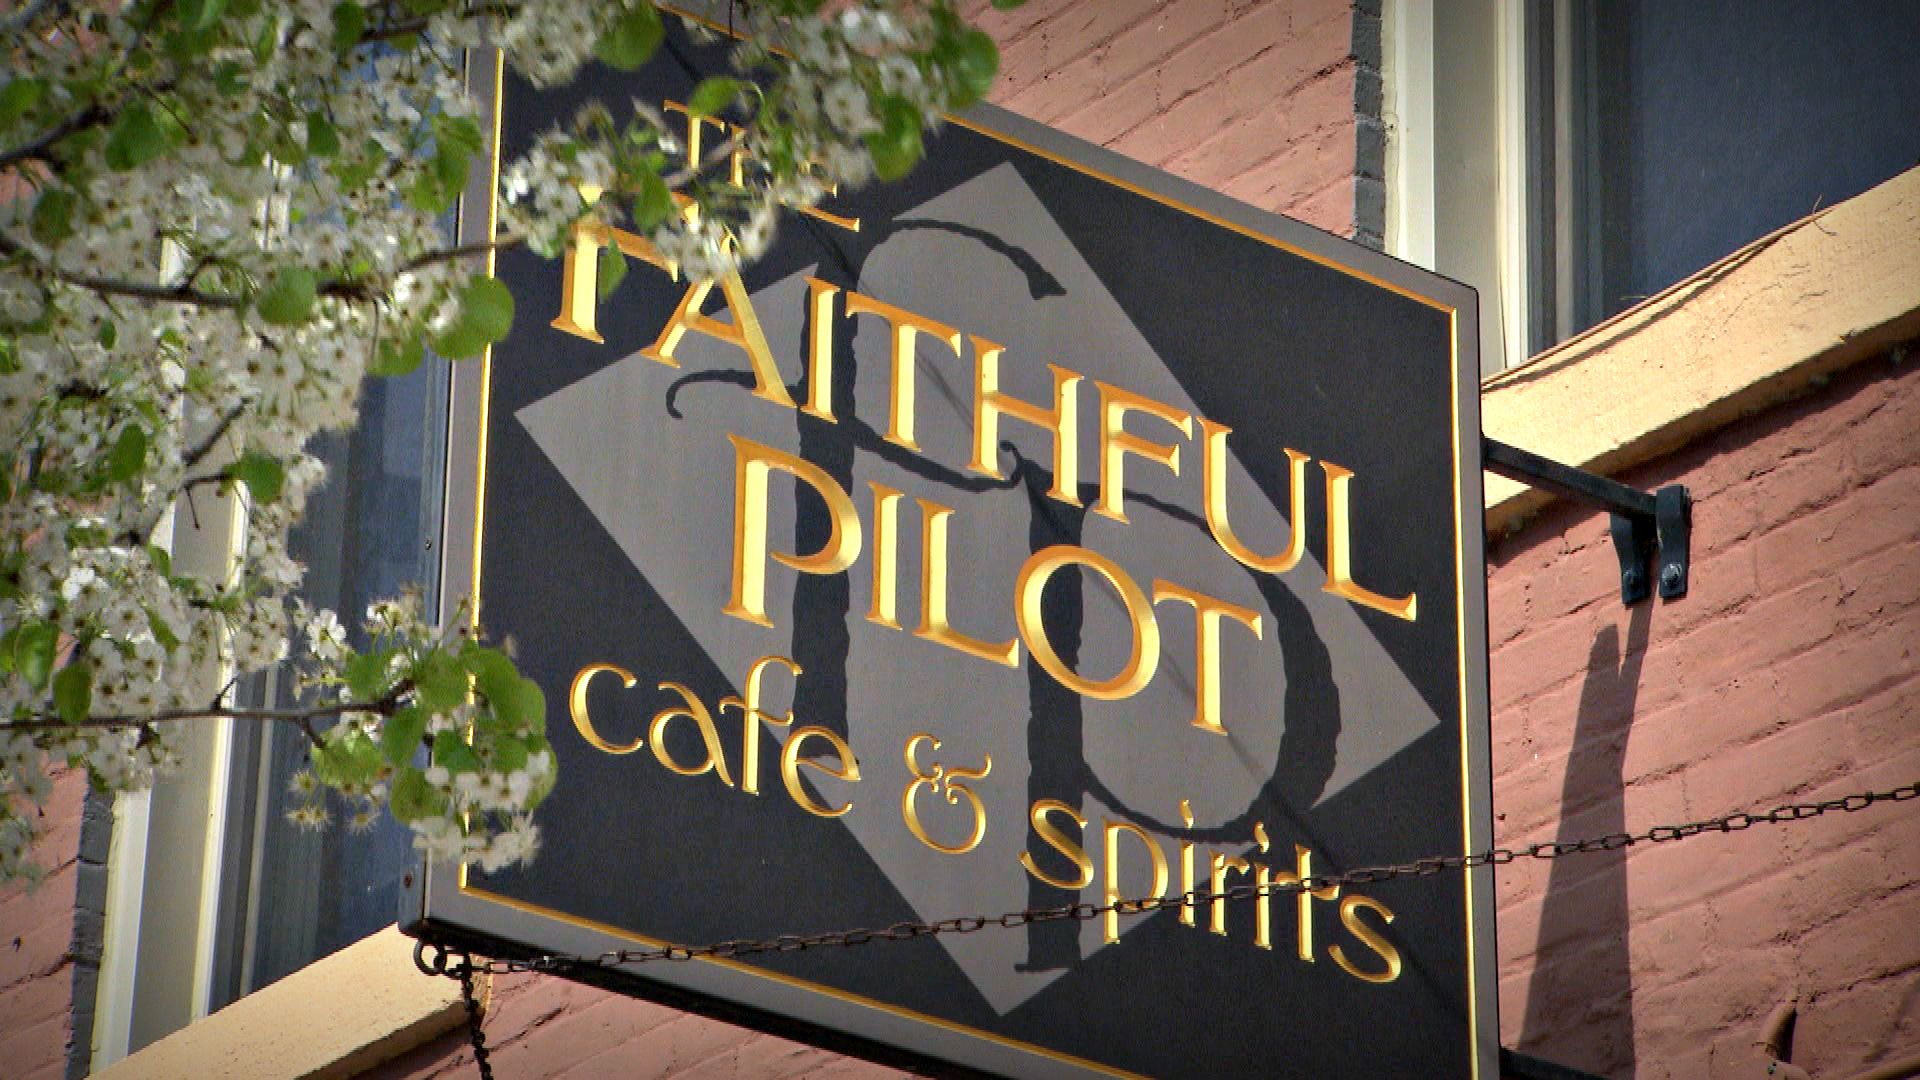 The Faithful Pilot Cafe Spirits In Leclaire Ia Chef Robert Day Melon